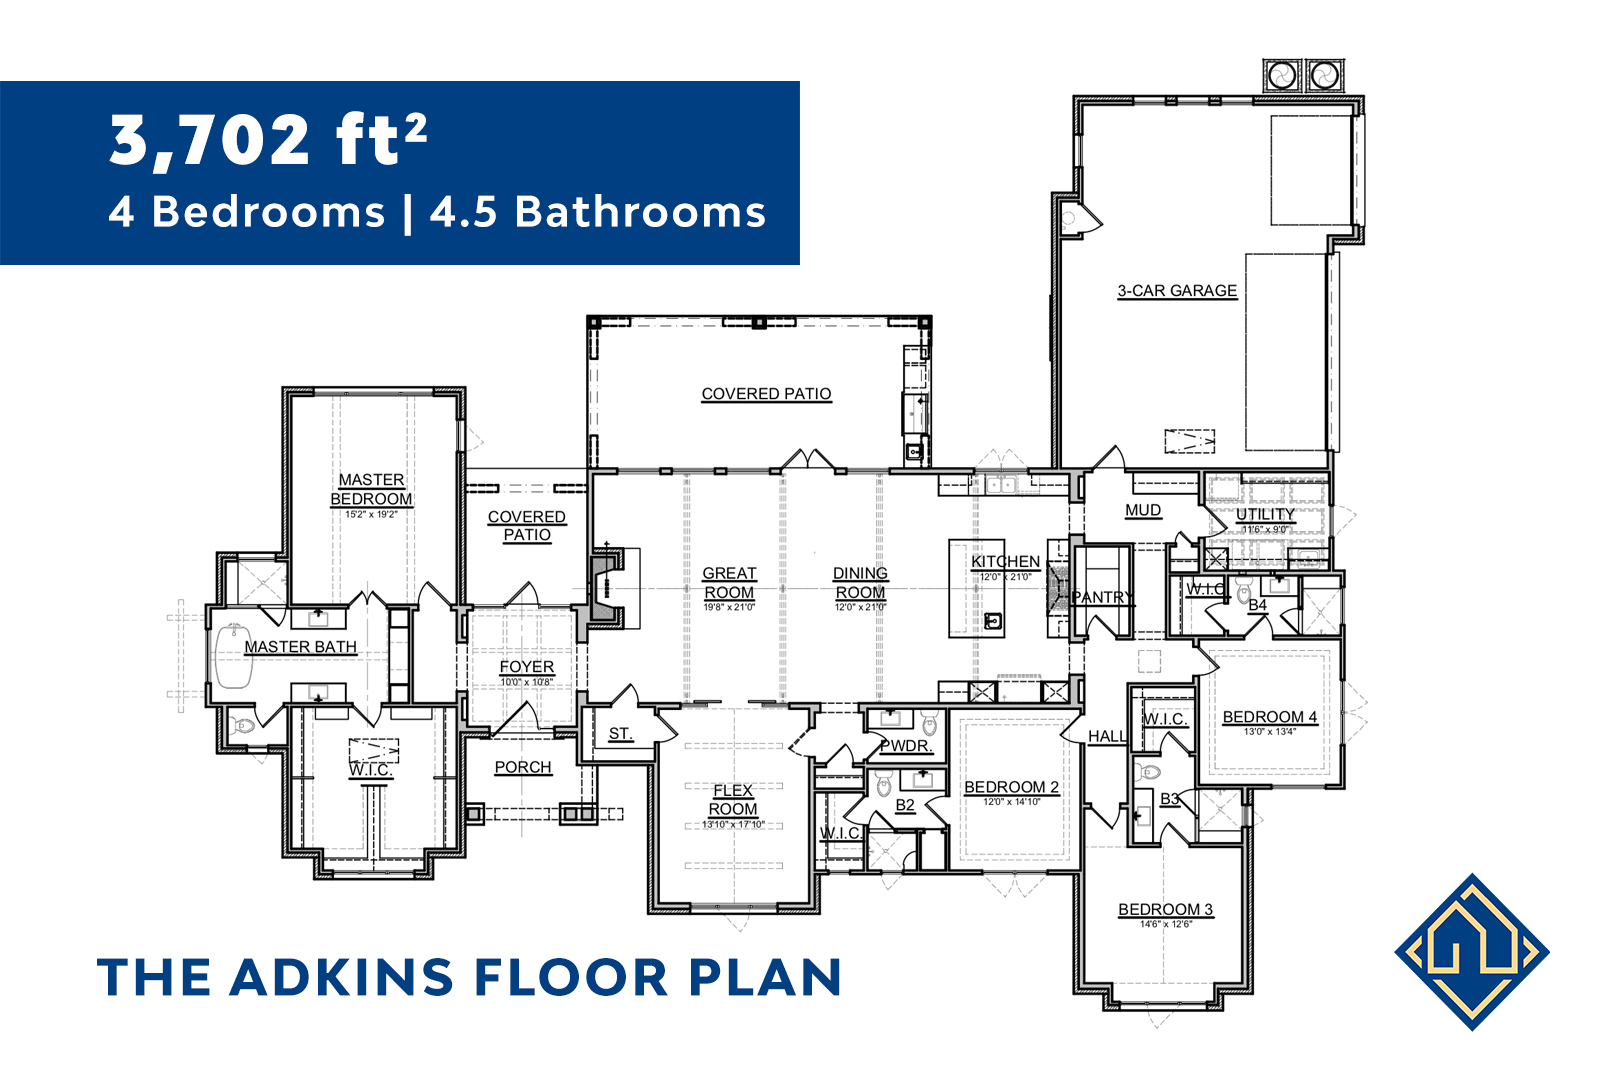 4 Bed 4.5 Bath Floor Plan with dimensions